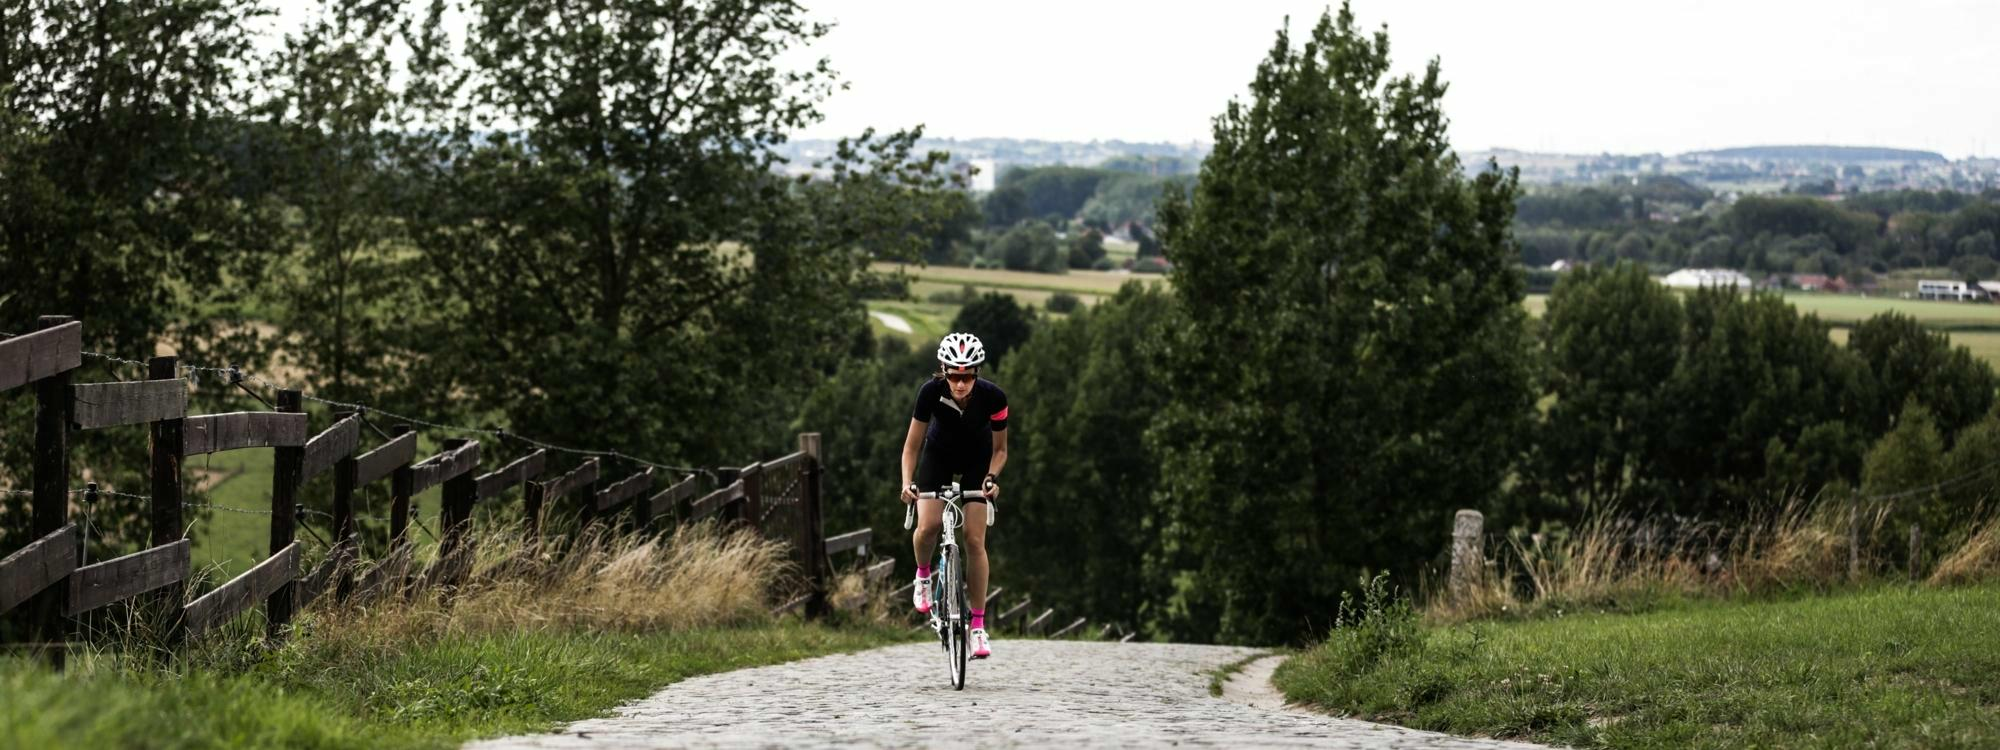 Vlaanderen - Cycling in Flanders